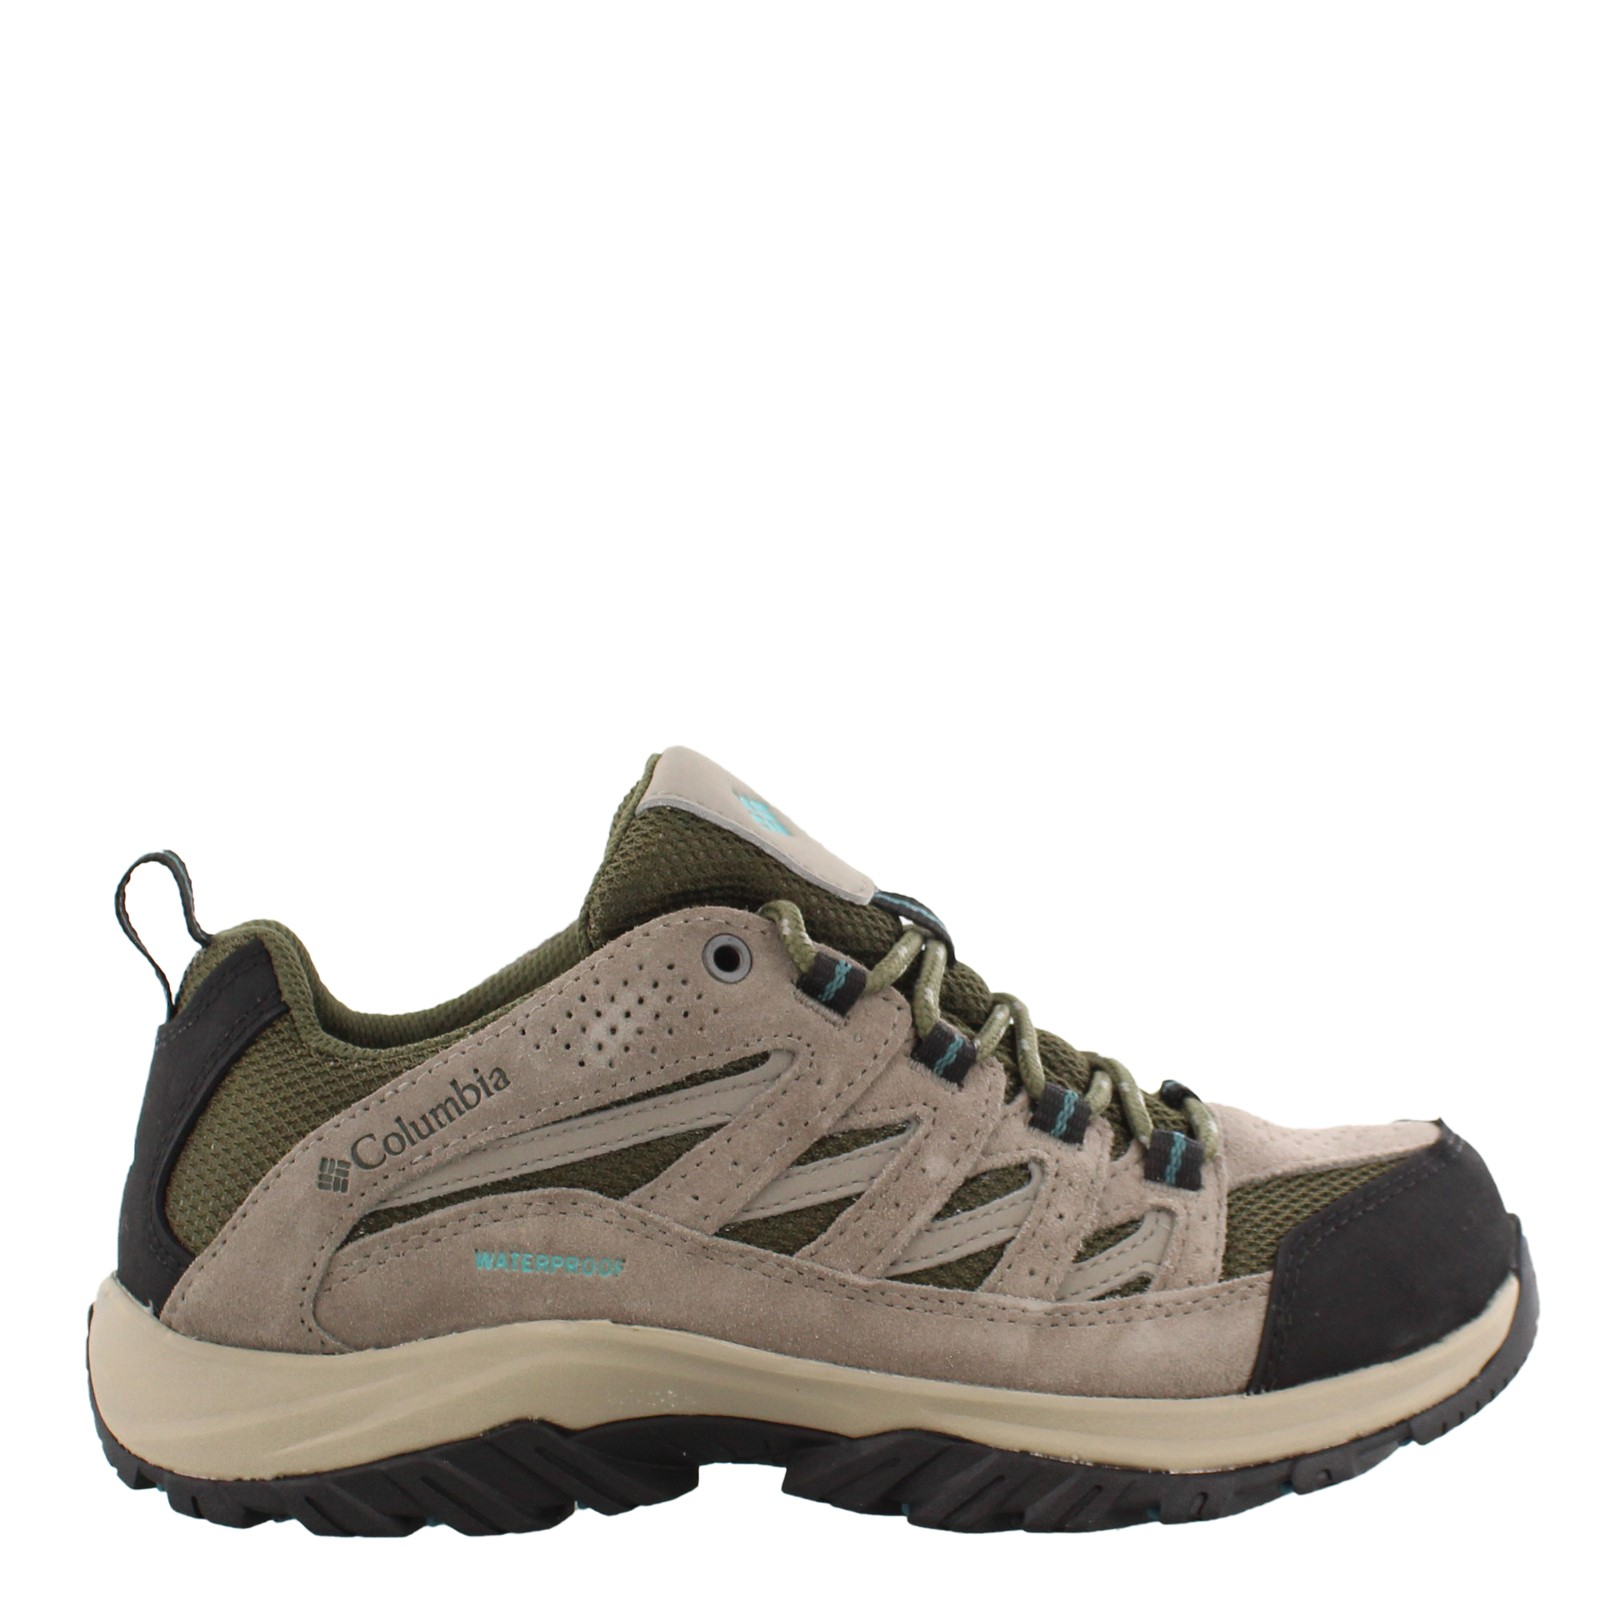 Women's Columbia, Crestwood Waterproof Hiking Shoes